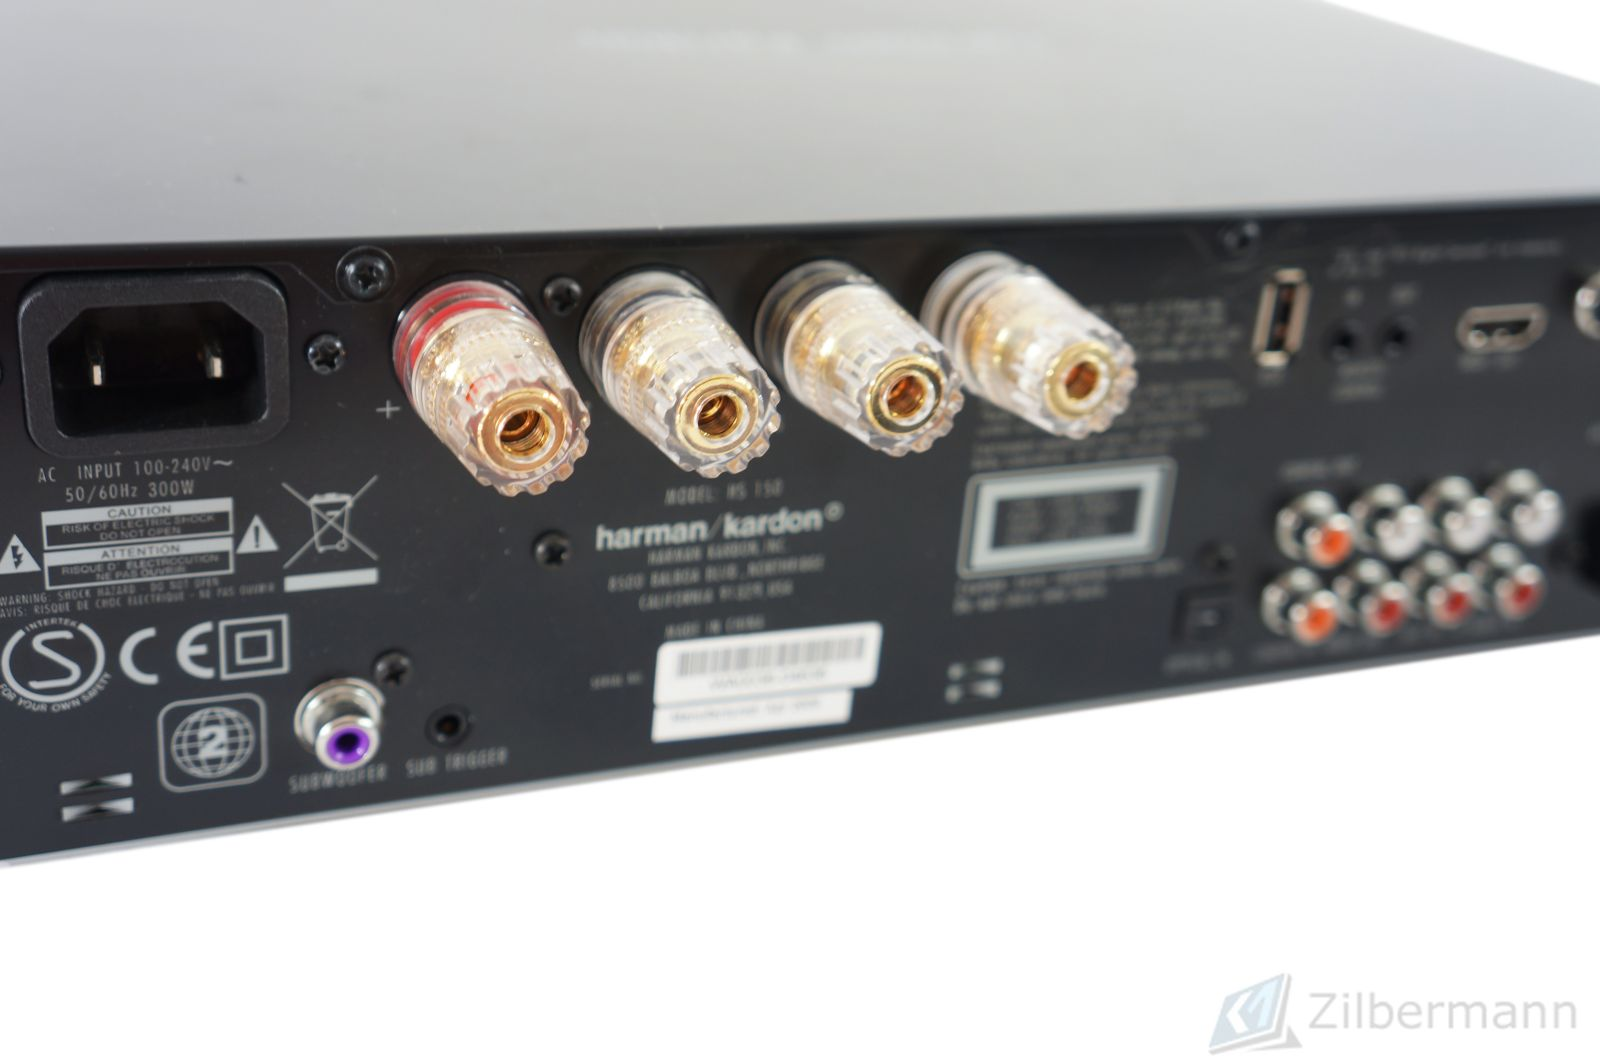 Harman_Kardon_HS_150_2.1_Player_Receiver_HDMI_USB_07